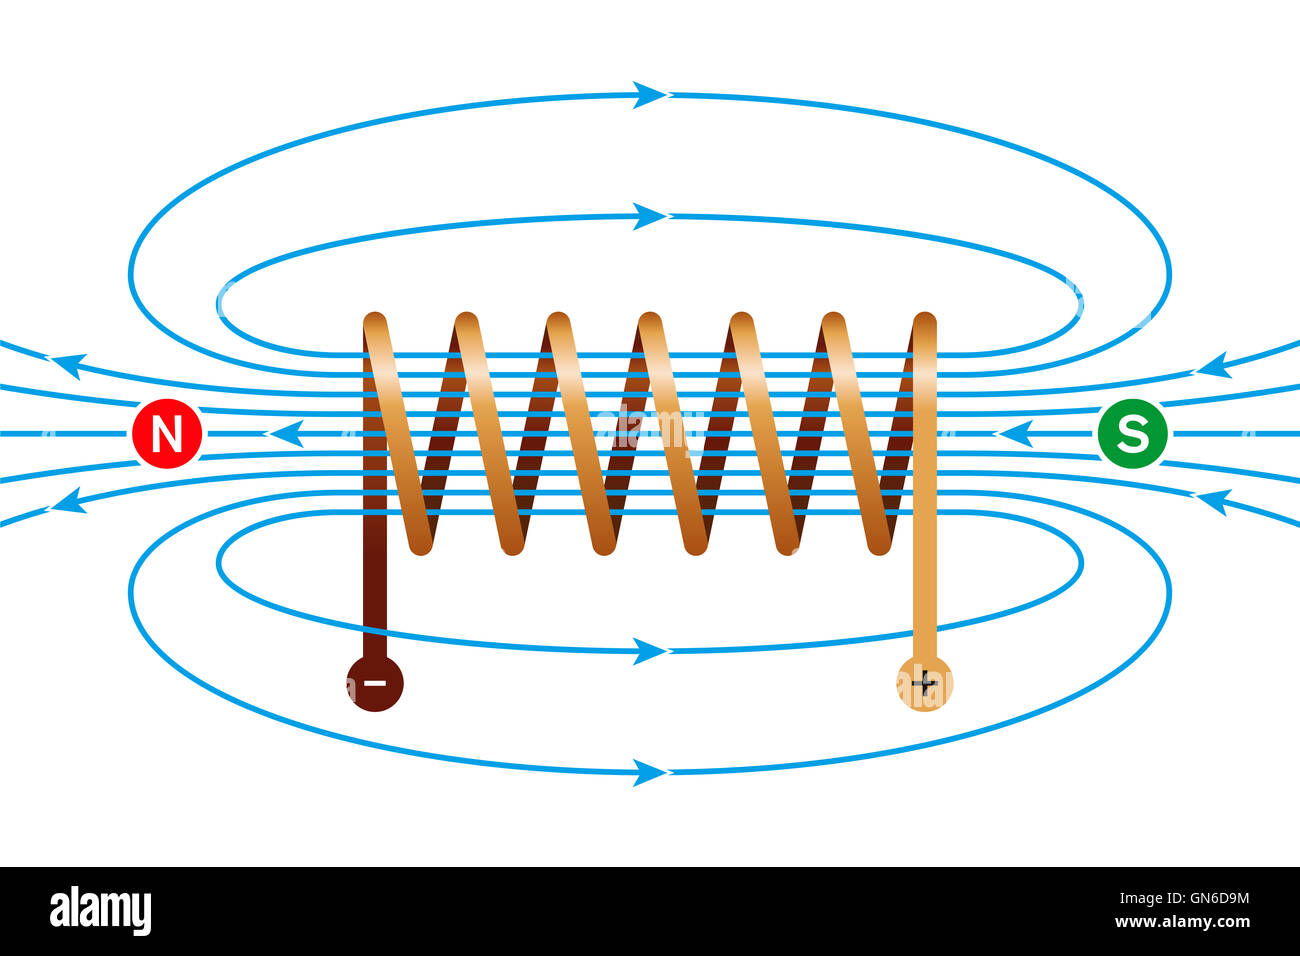 Electromagnetic Coil Stock Photos & Electromagnetic Coil Stock ...